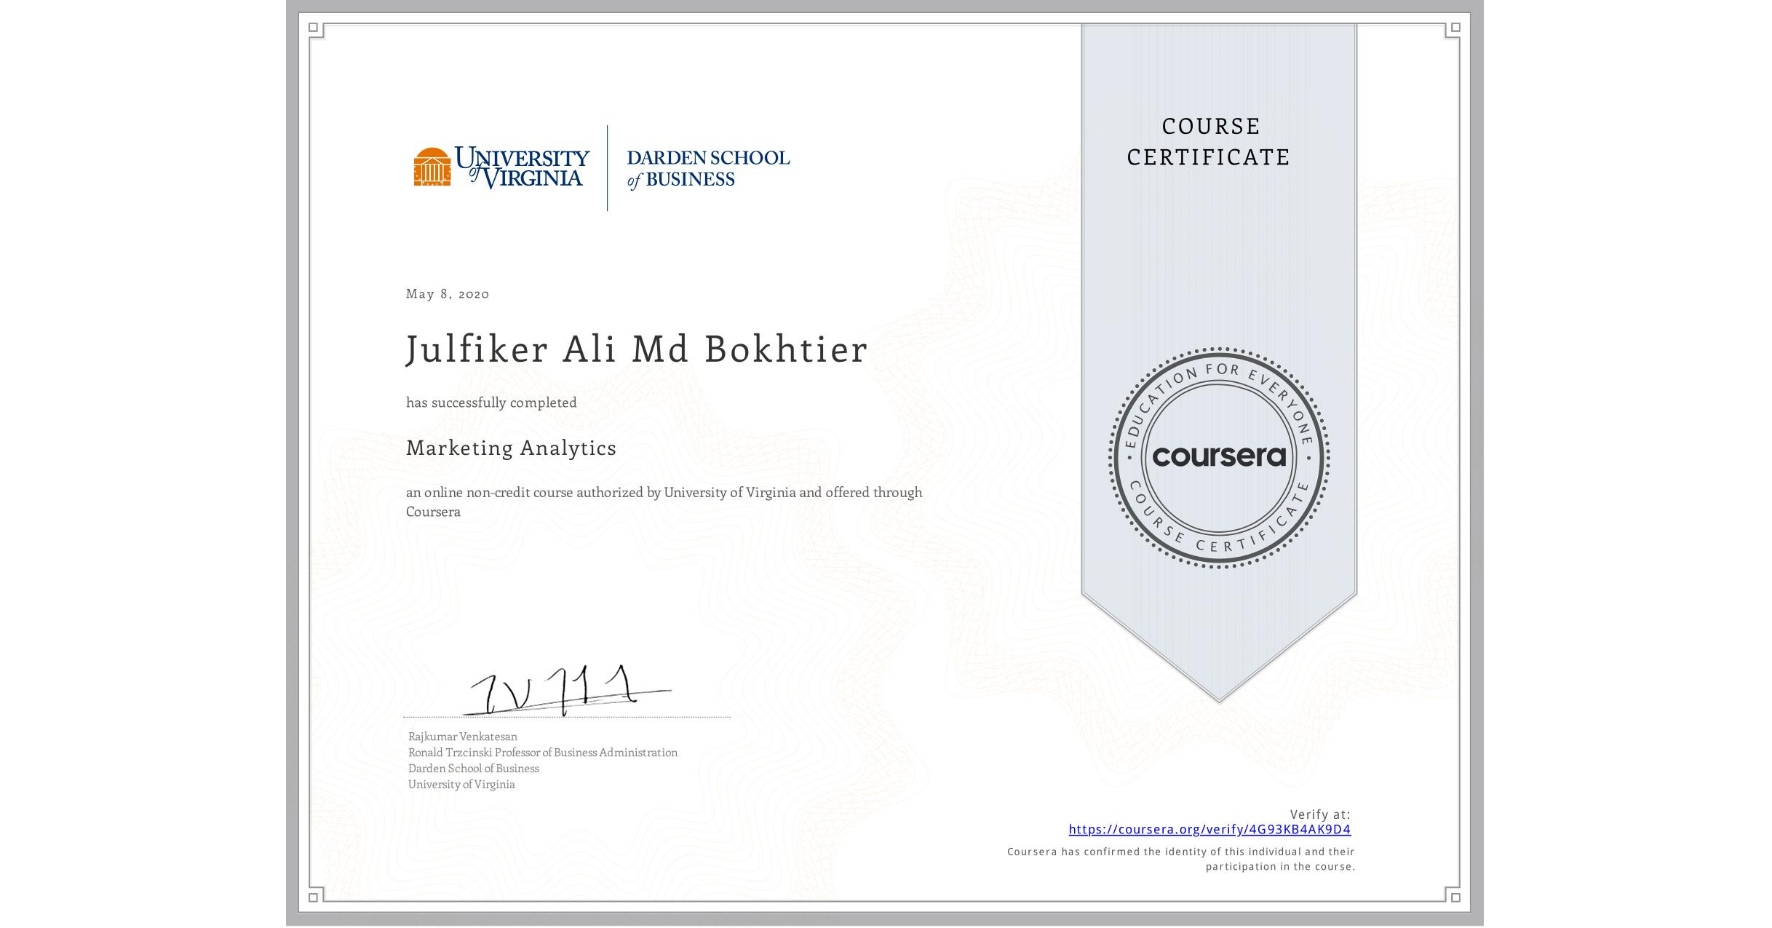 View certificate for Julfiker Ali  Md Bokhtier, Marketing Analytics, an online non-credit course authorized by University of Virginia and offered through Coursera